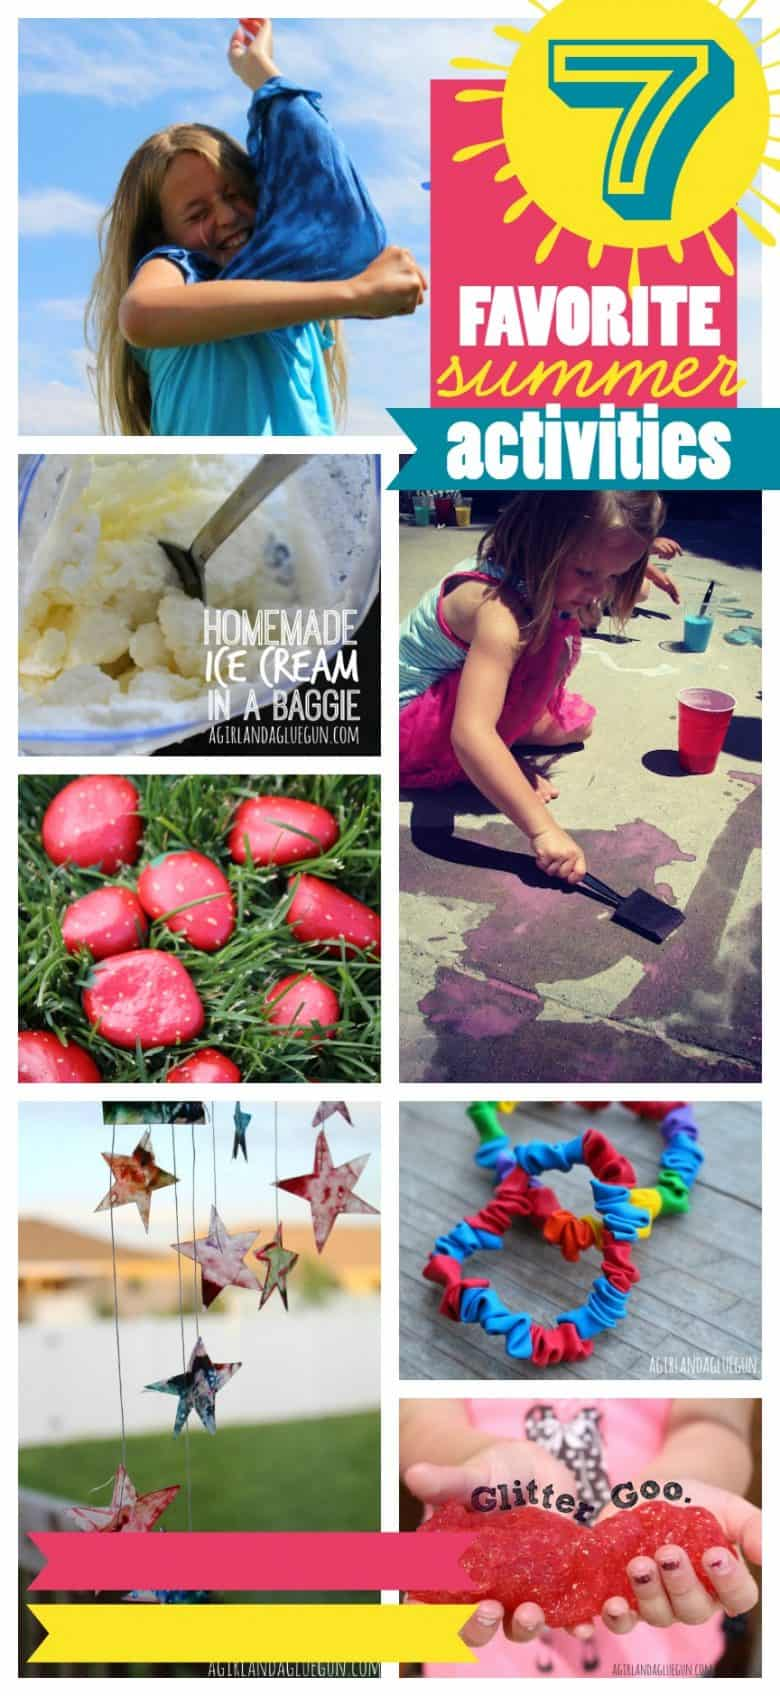 top 7 of our favorite summertime games, crafts and activities--